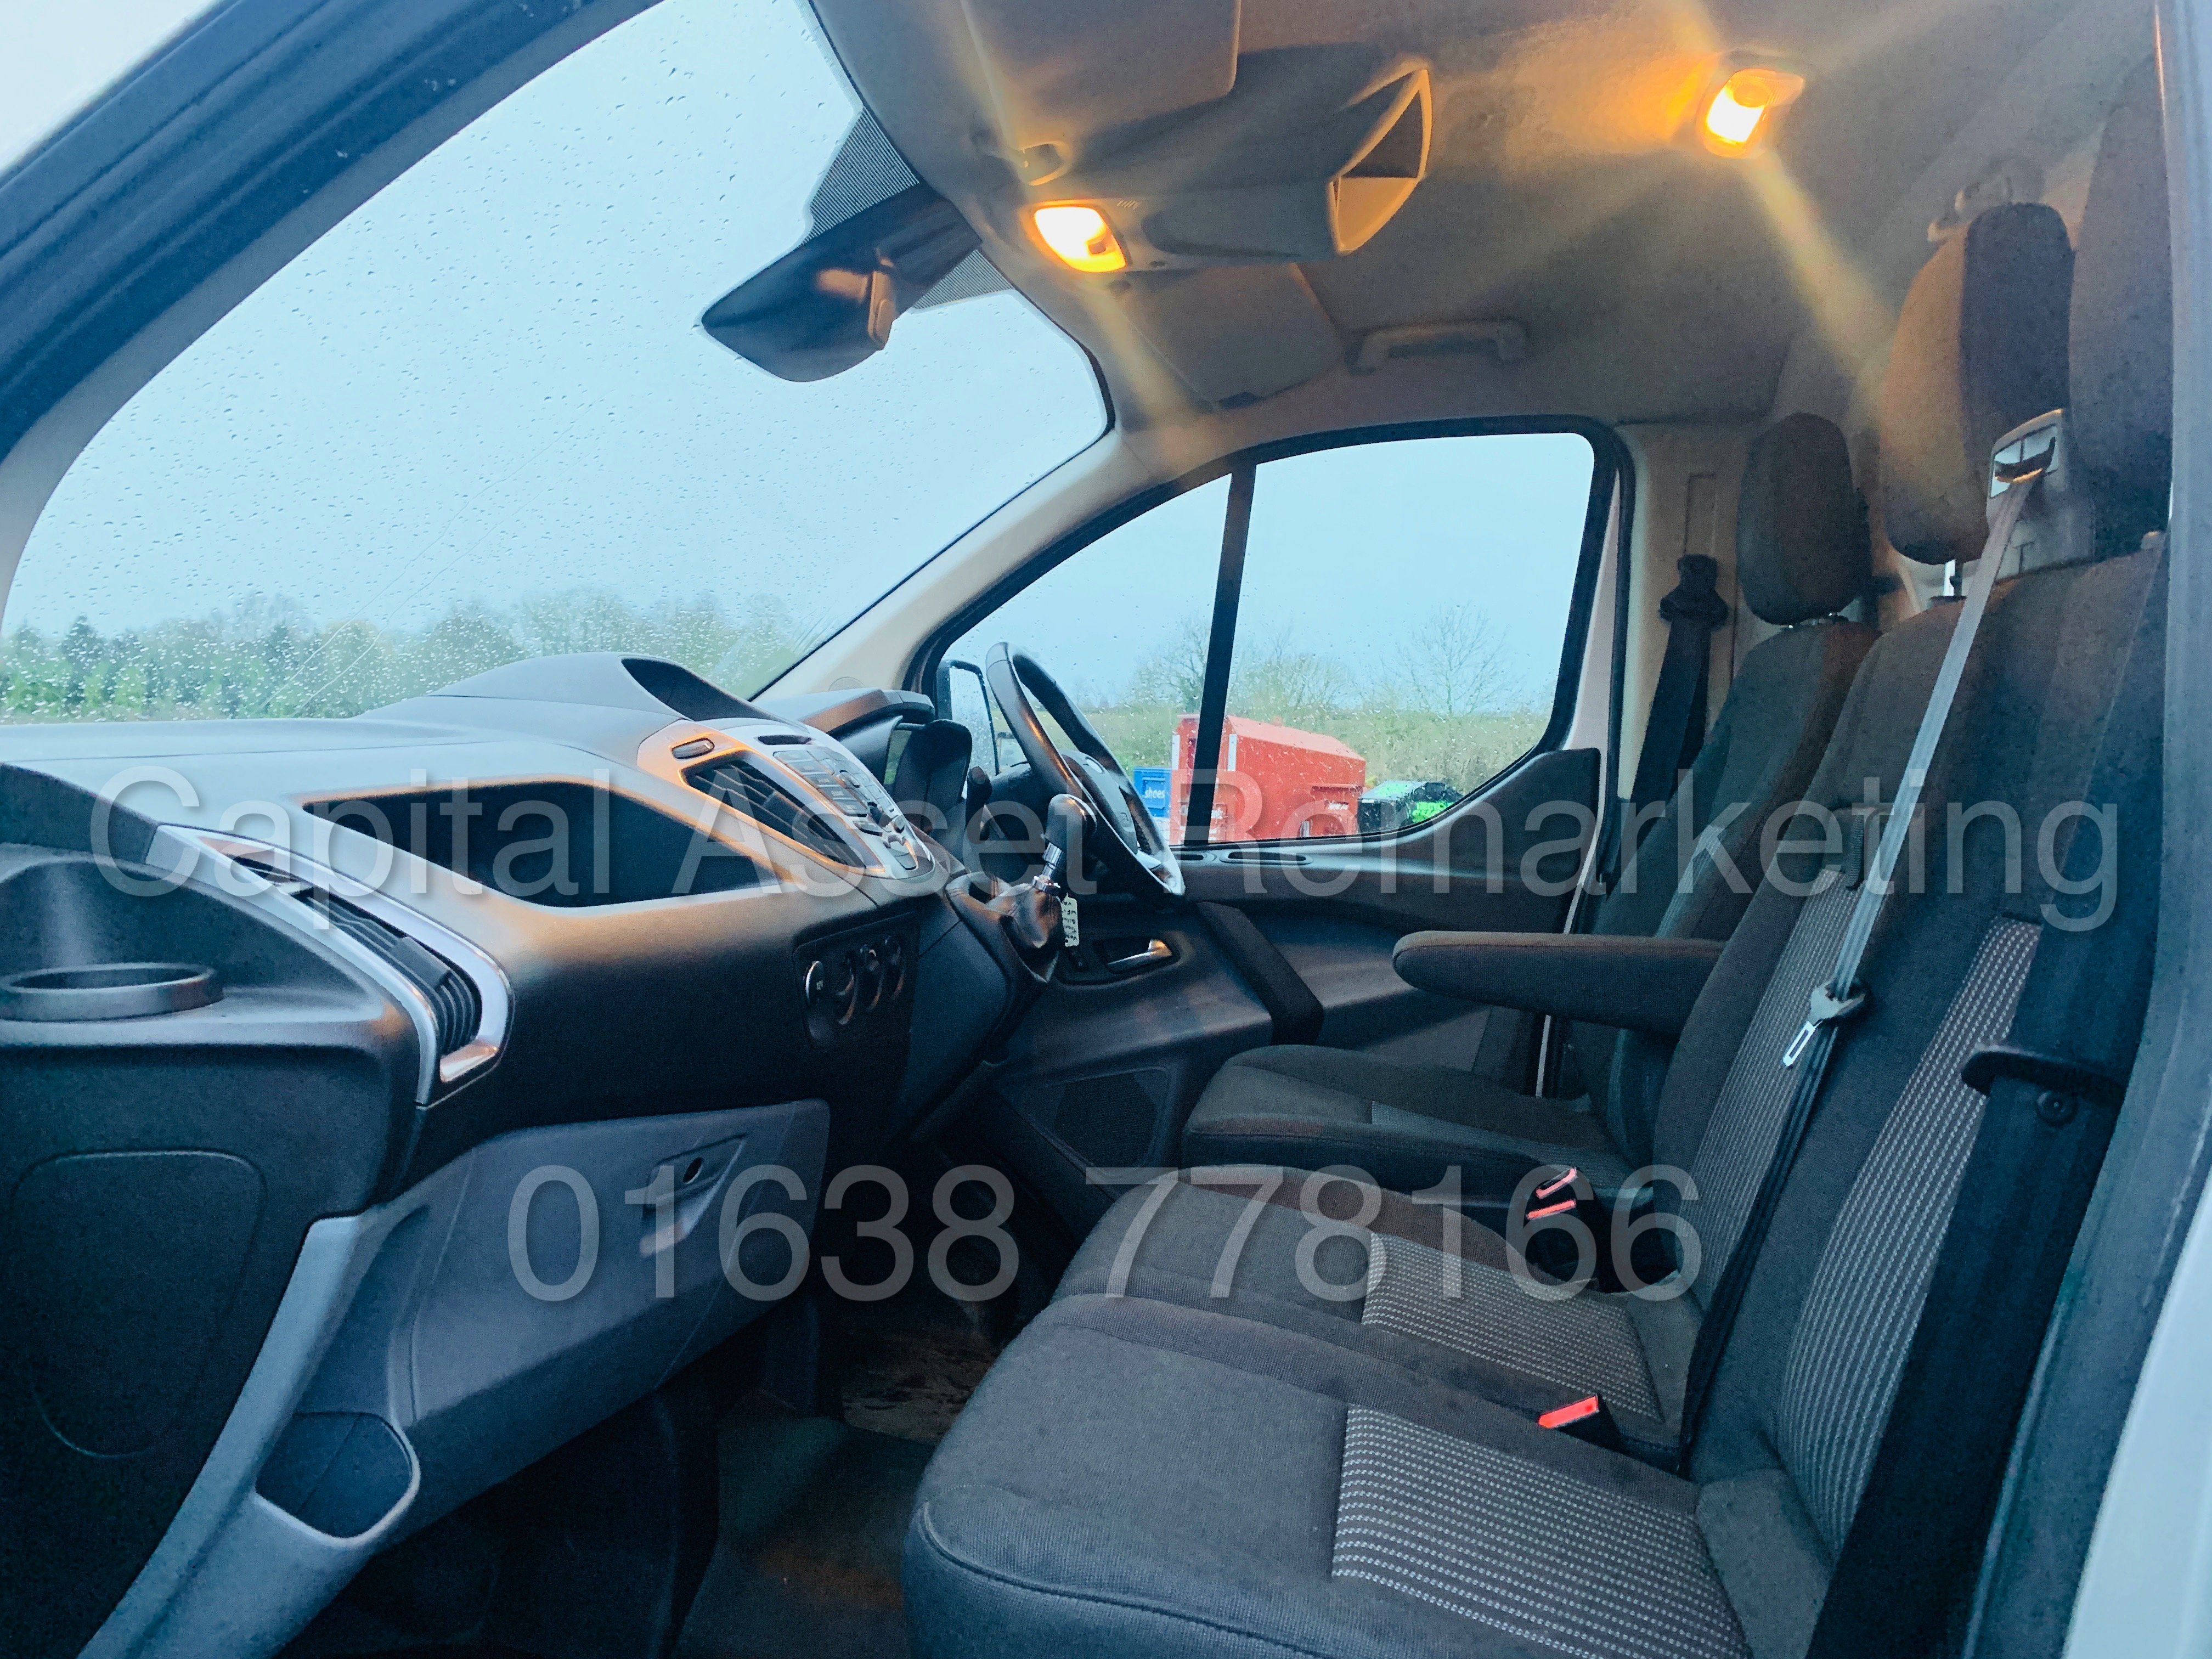 (On Sale) FORD TRANSIT *TREND* 290 SWB (2017 - EURO 6 / AD-BLUE) '2.0 TDCI - 130 BHP - 6 SPEED' - Image 18 of 41